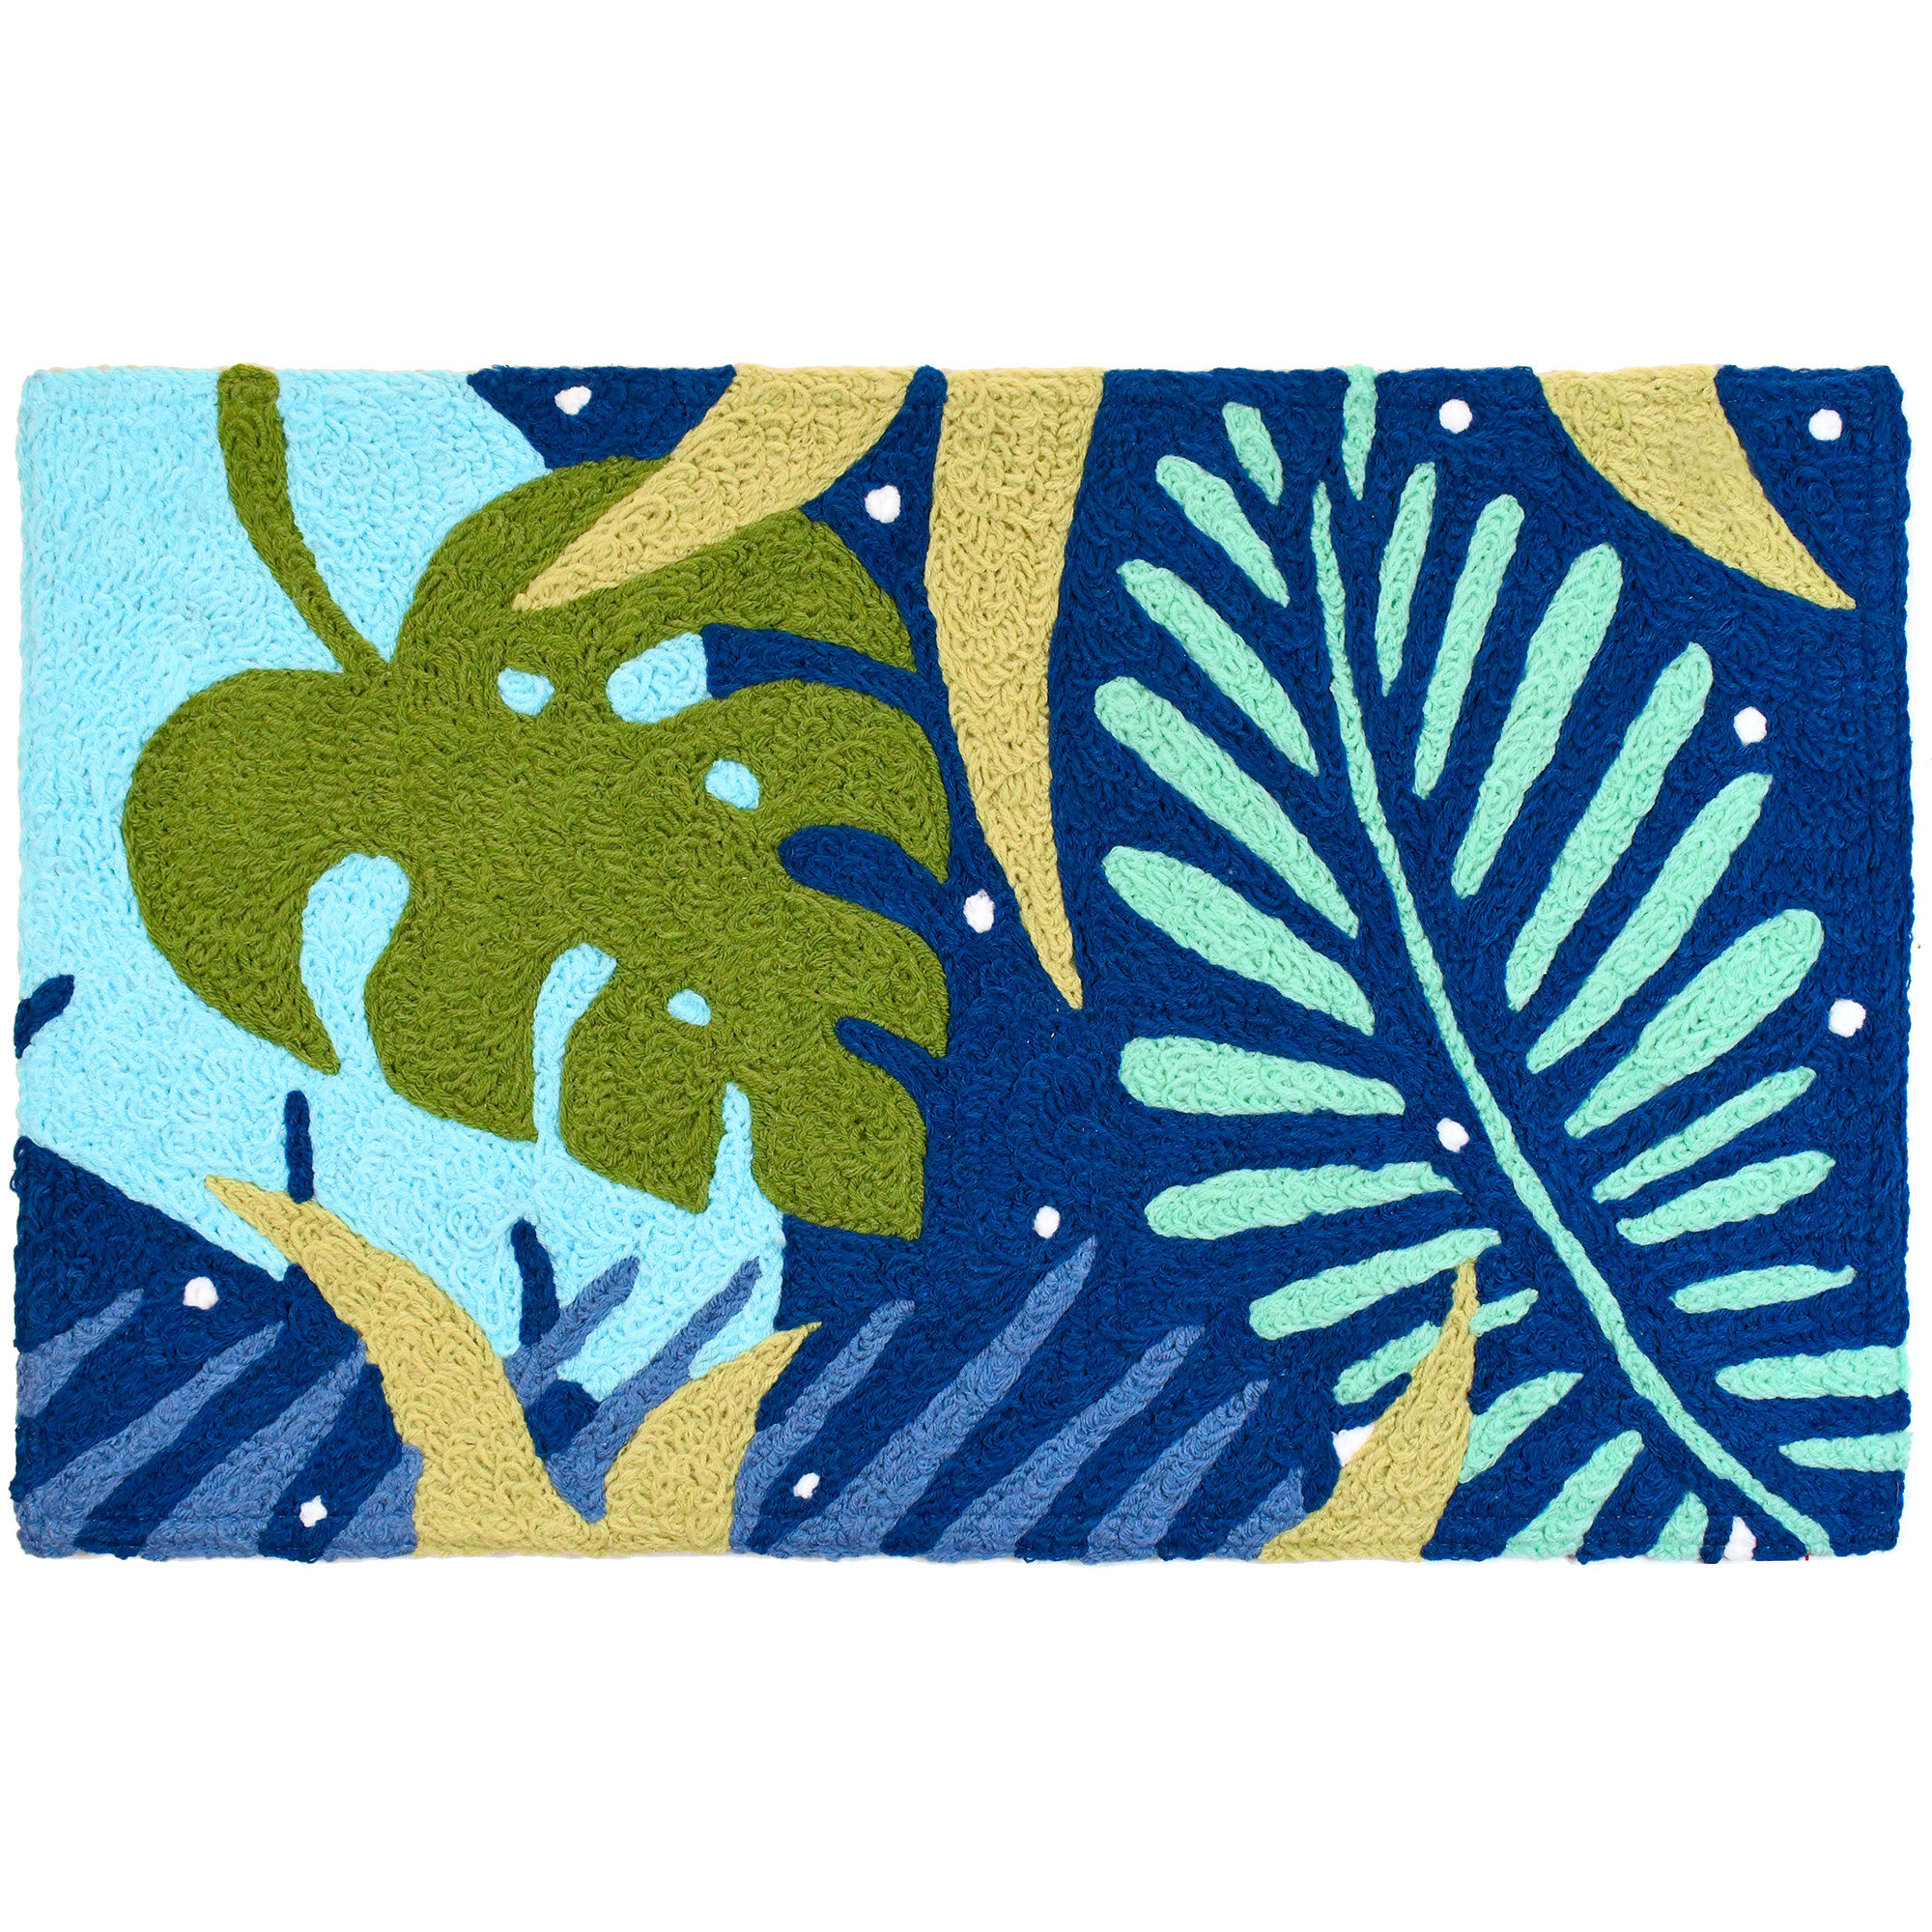 Hues of blue turn tropical foliage into a welcomed sight on this Jellybean® accent rug. Crafted using machine washable materials, the hand-tufted delight is sure to last for many undersea adventures to come.